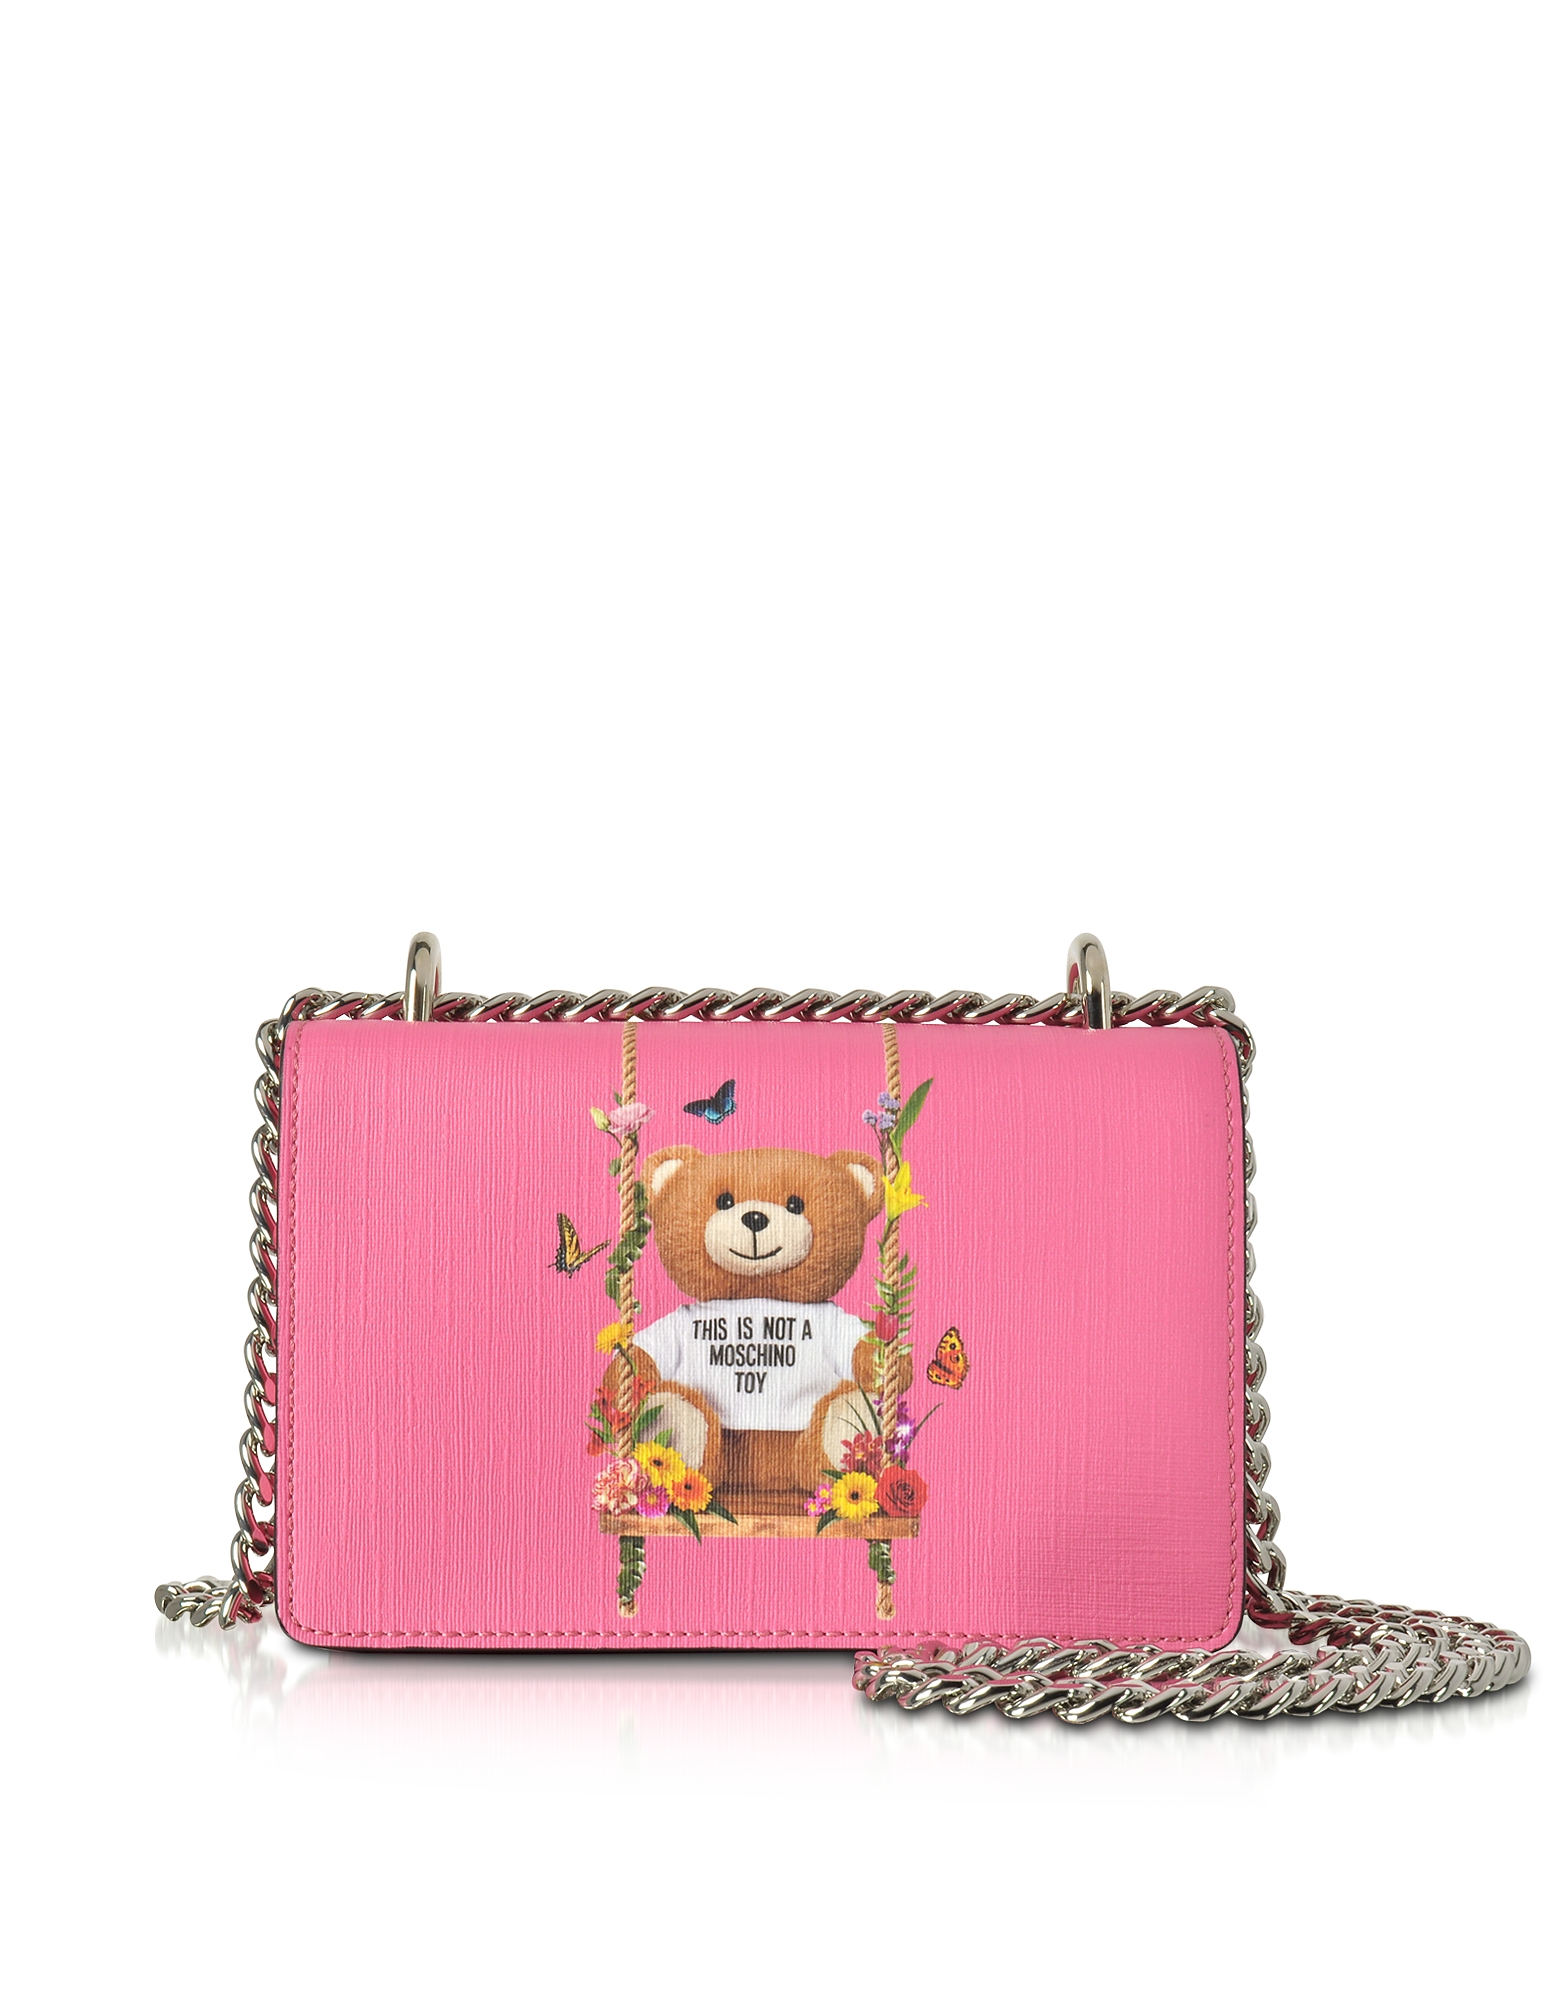 Moschino Handbags, Teddy Bear Pink Eco Leather Crossbody Bag